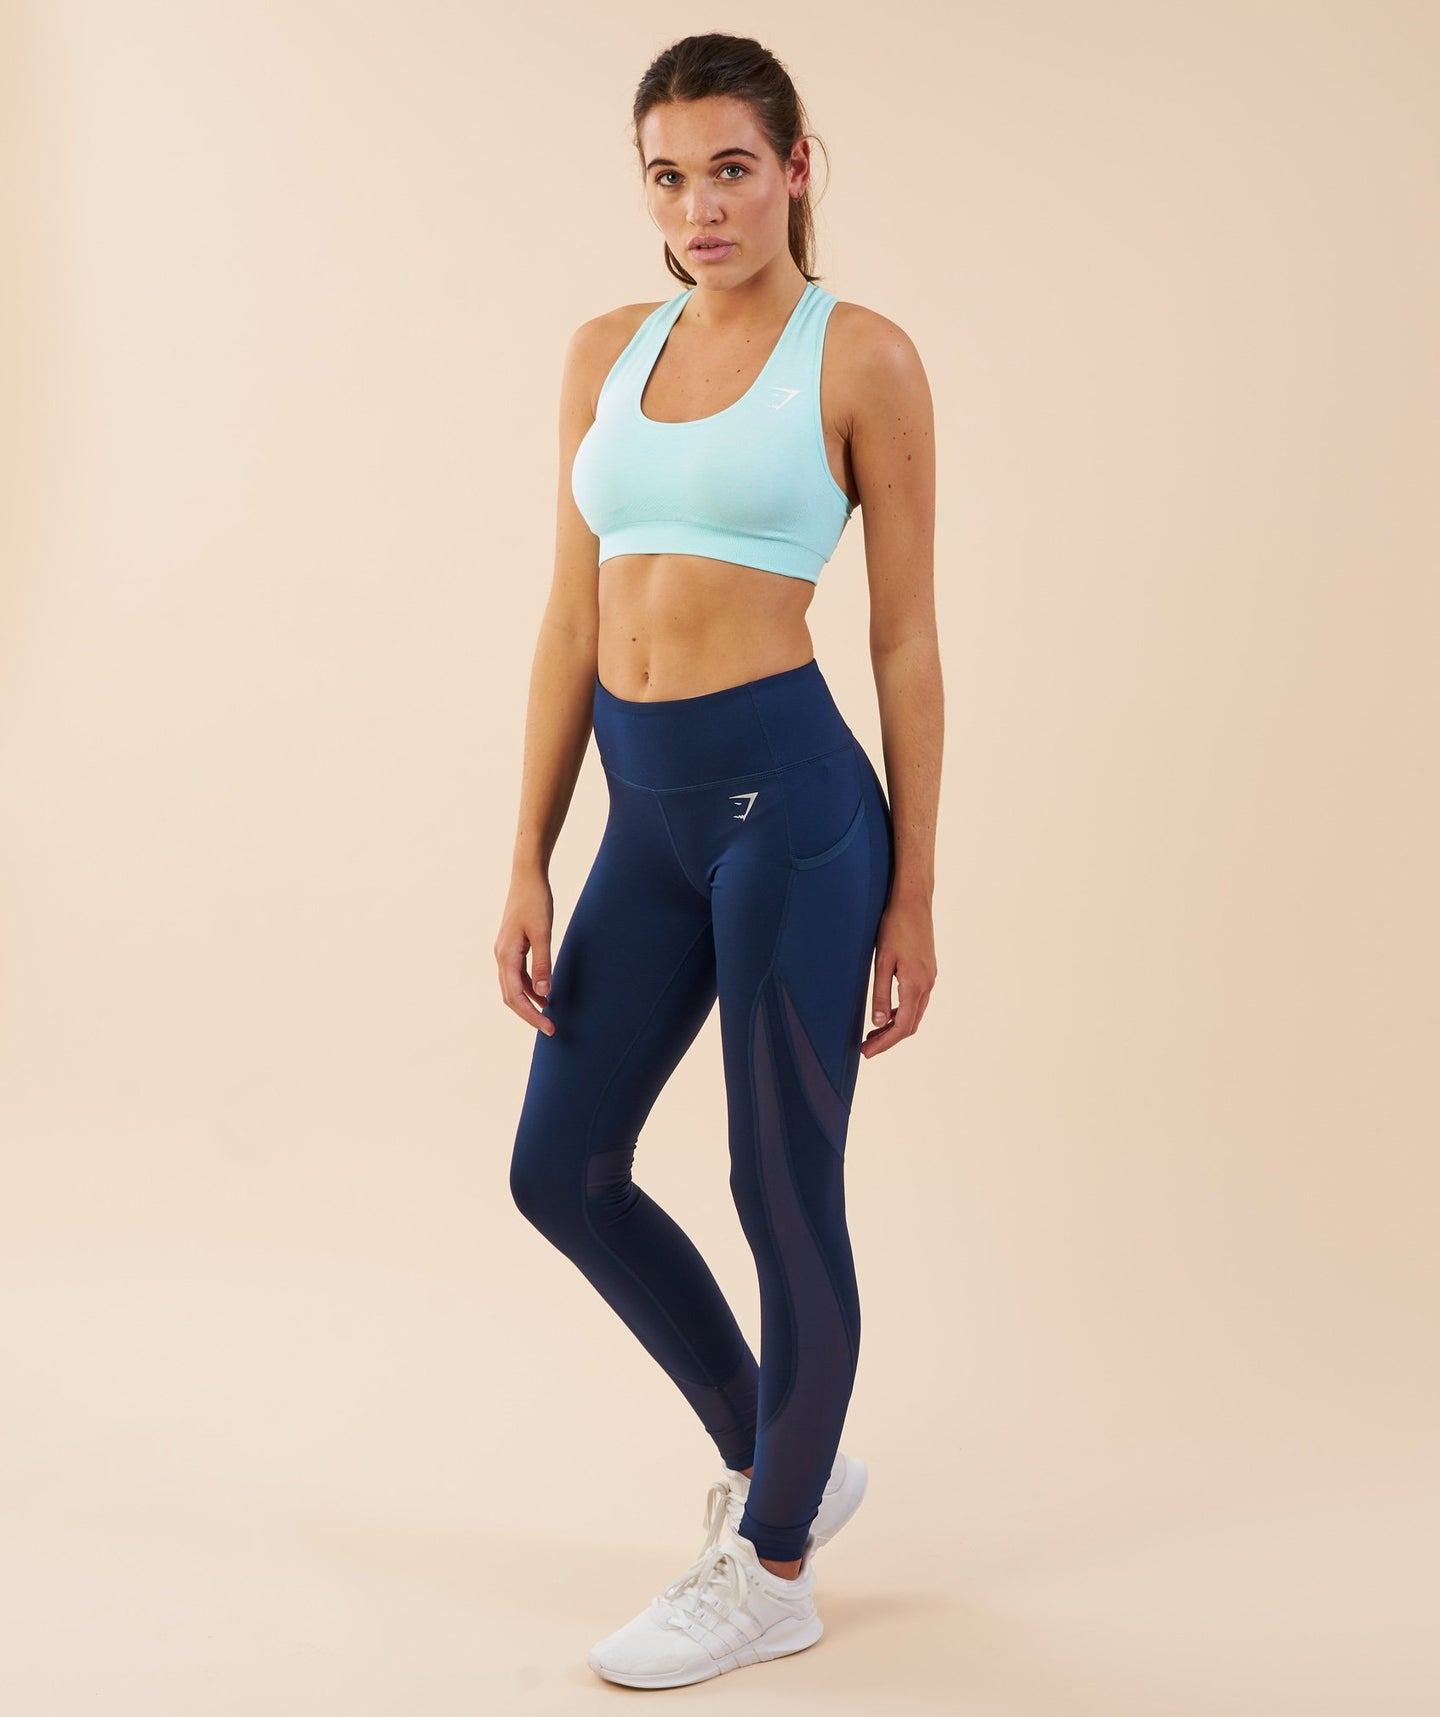 2c2bc8c2e1 Gymshark is an exclusive activewear brand that makes workout clothing  enjoyable